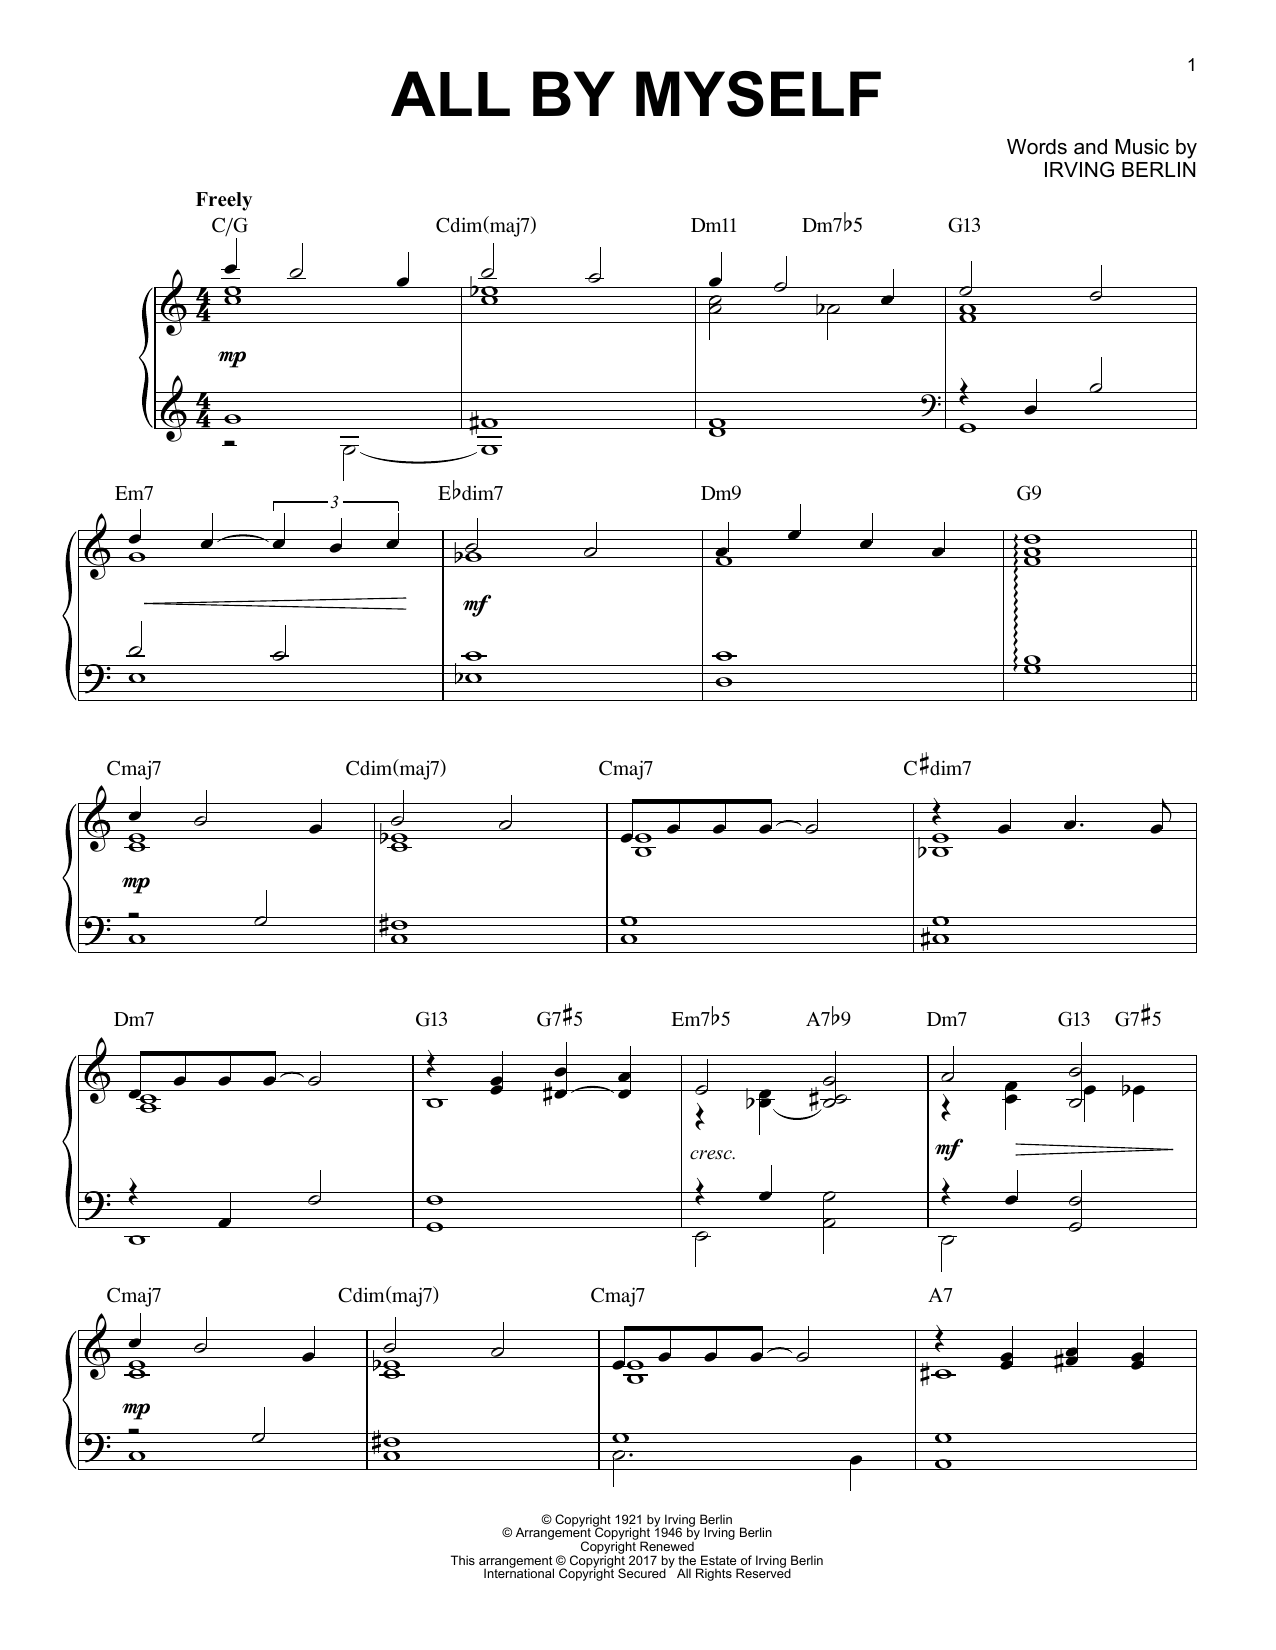 Irving Berlin All By Myself [Jazz version] sheet music notes and chords. Download Printable PDF.